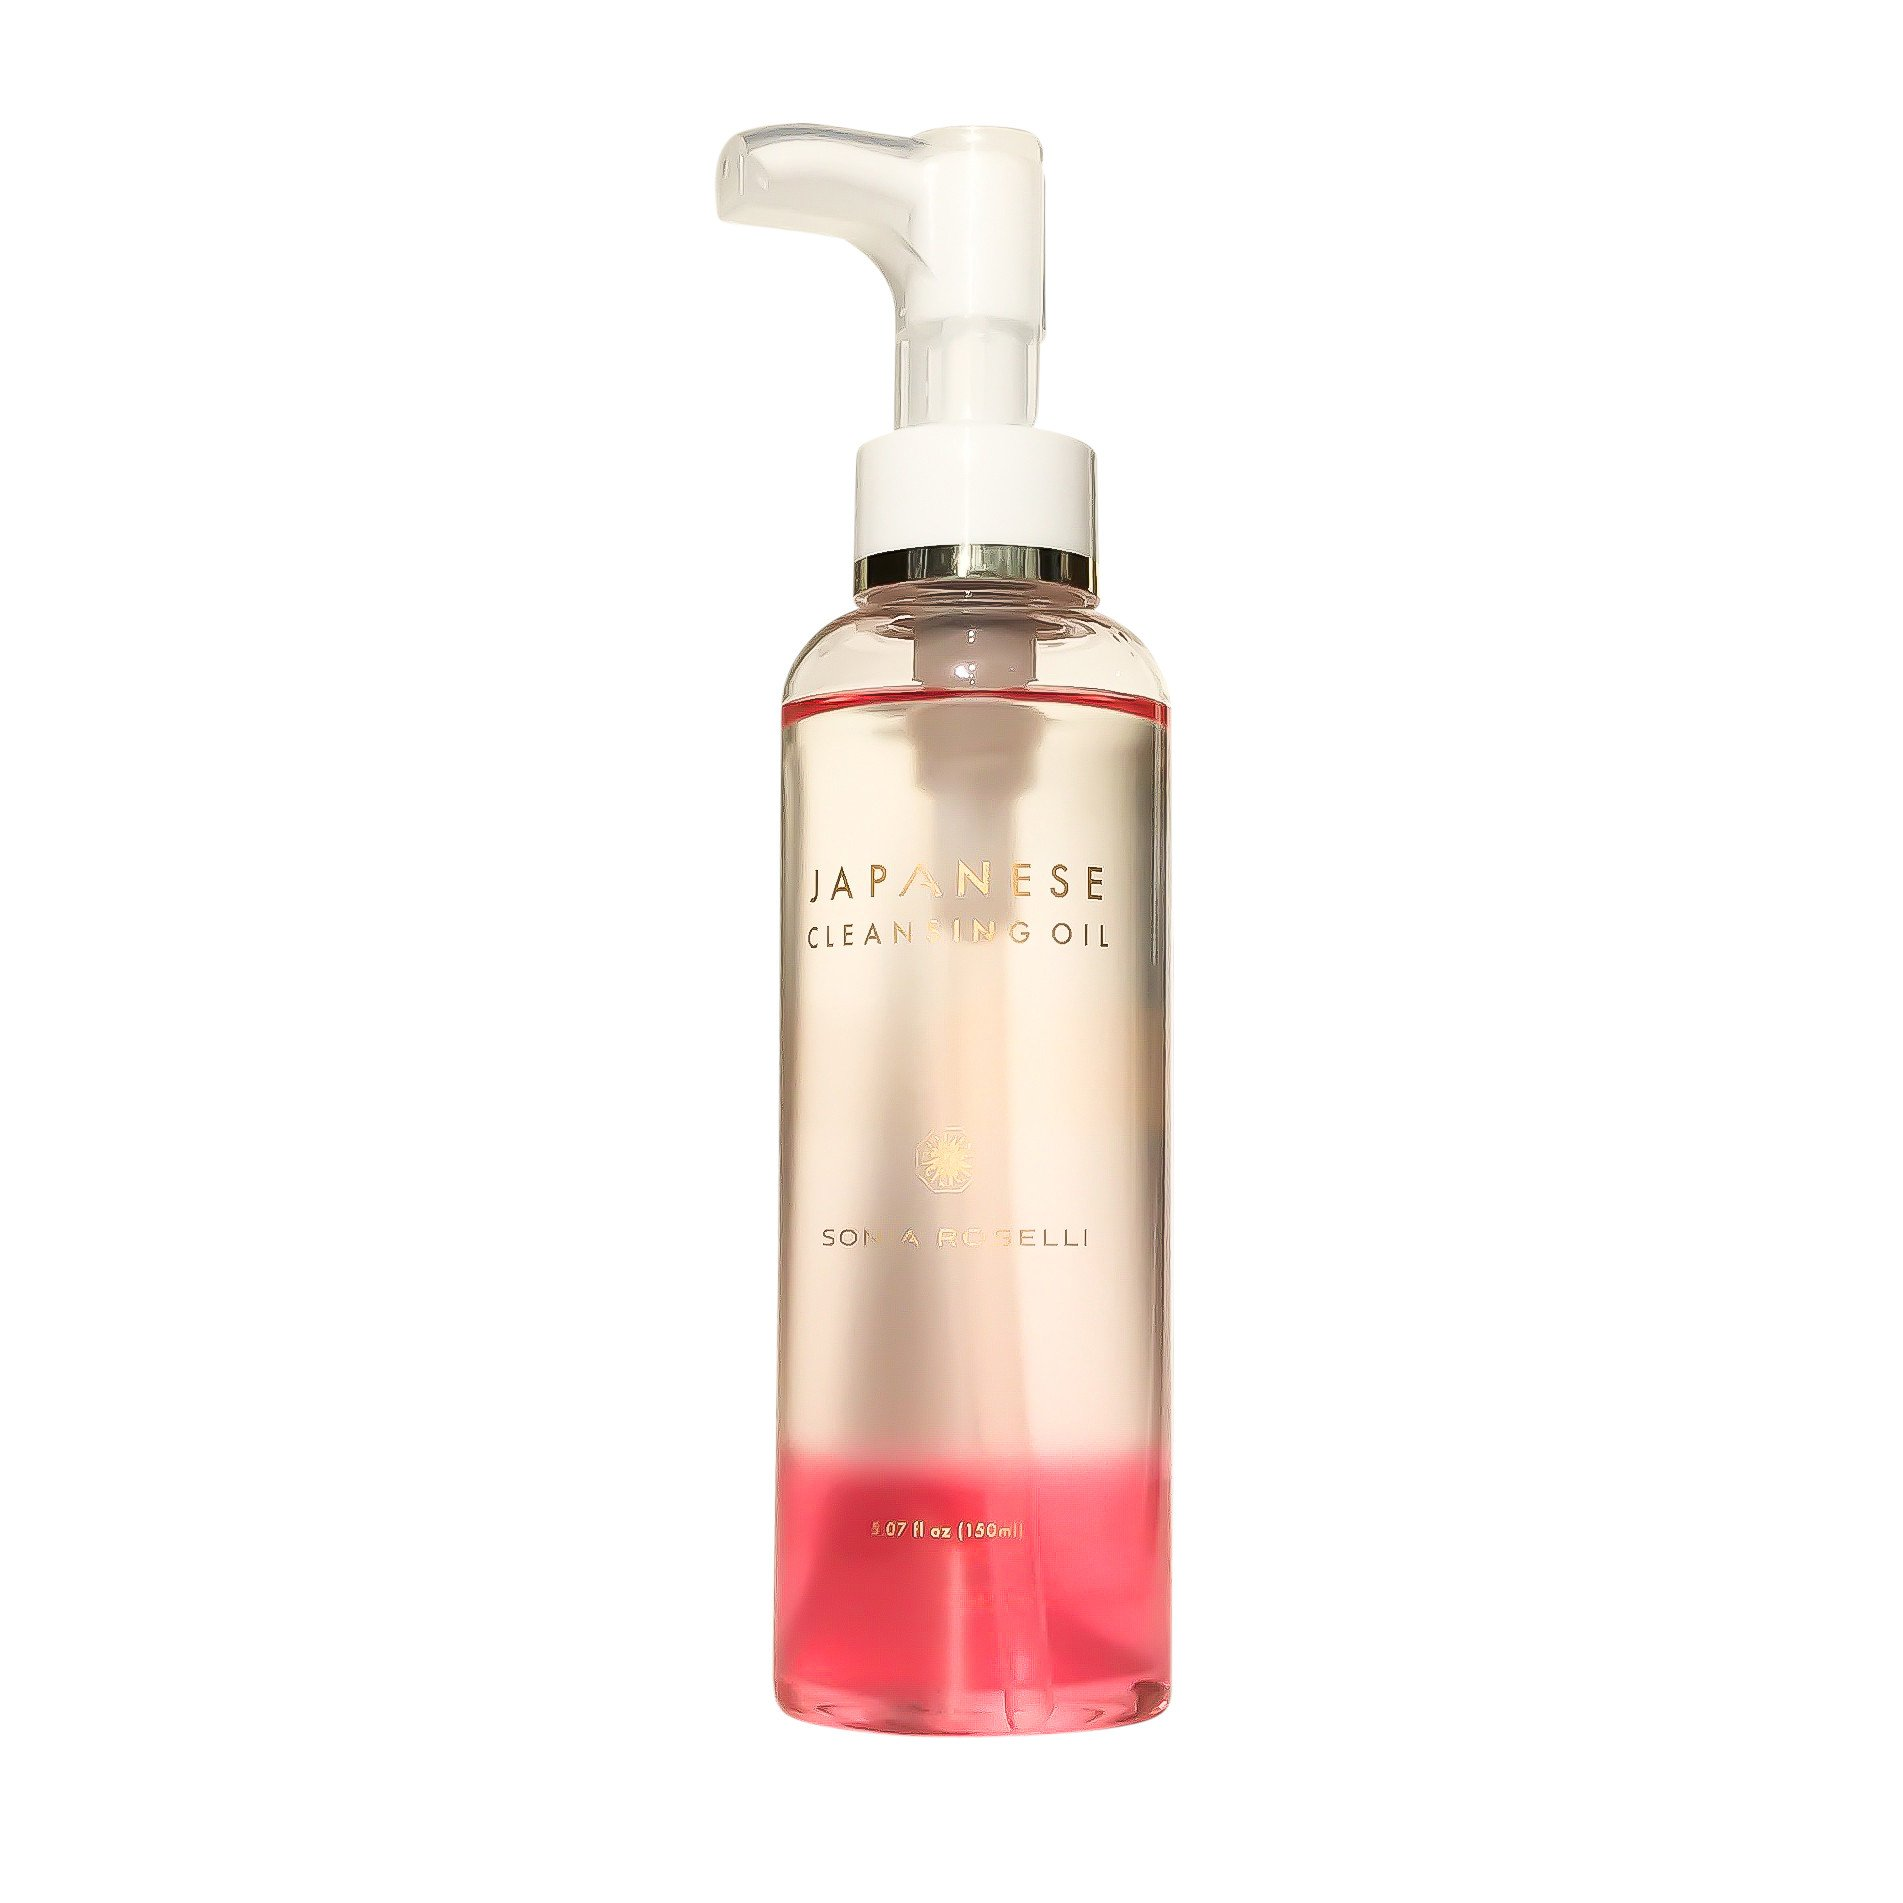 Sonia Roselli Japanese Cleansing Oil